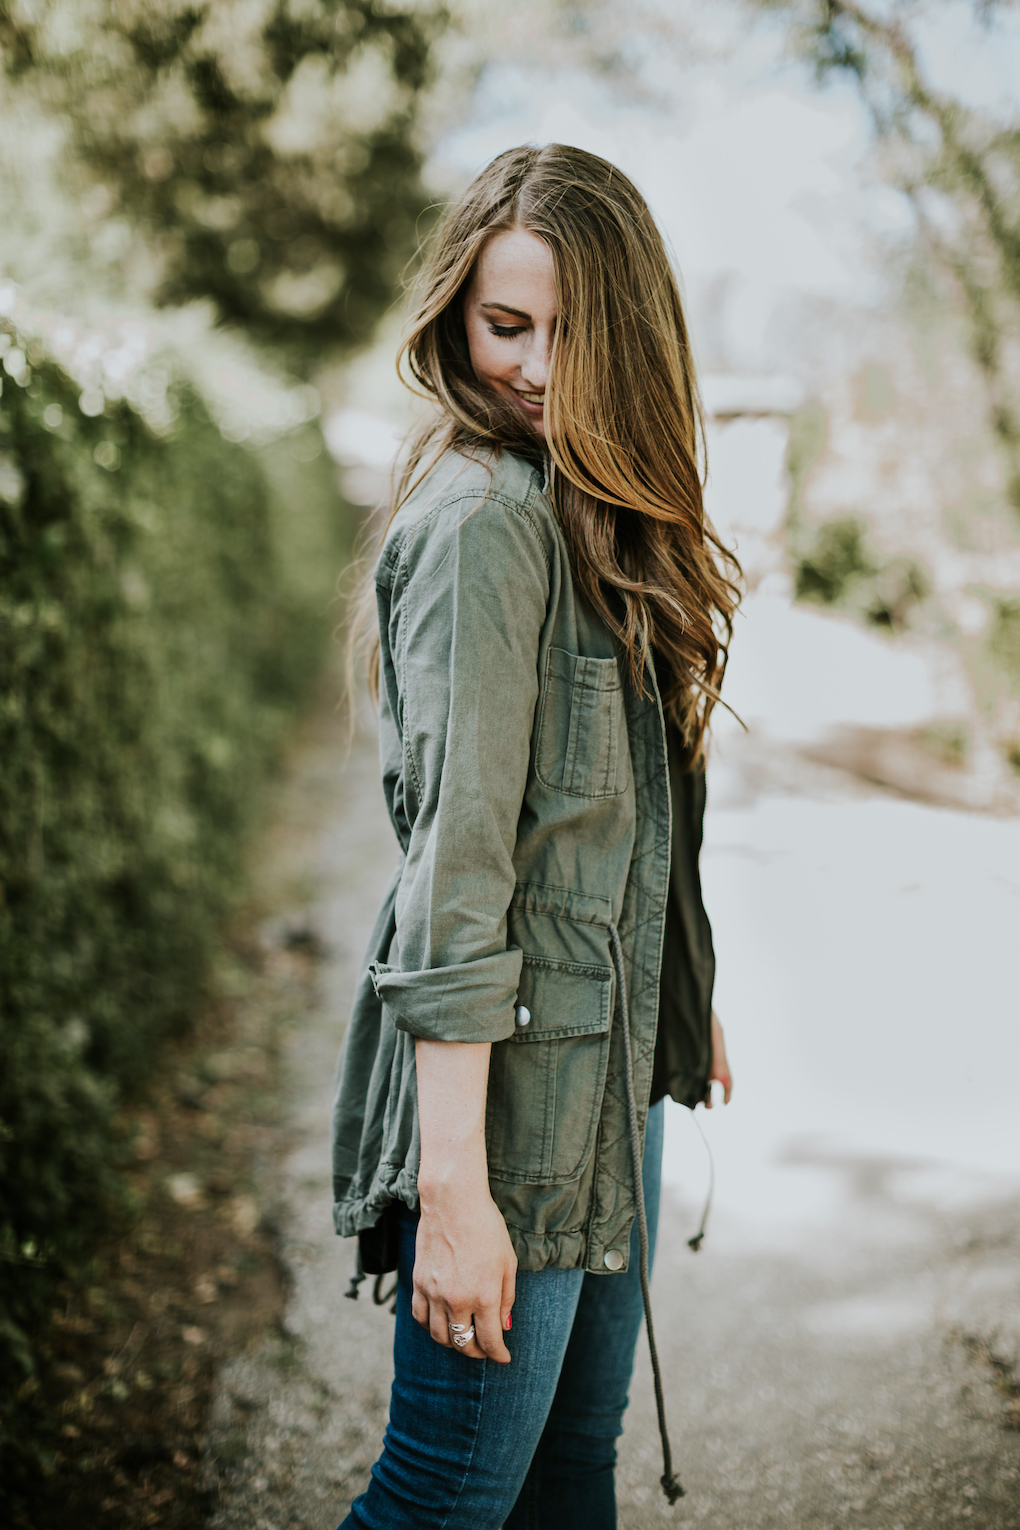 girl looking down with eyes closed wearing green army jacket with the sleeves rolled and loose curled brown hair